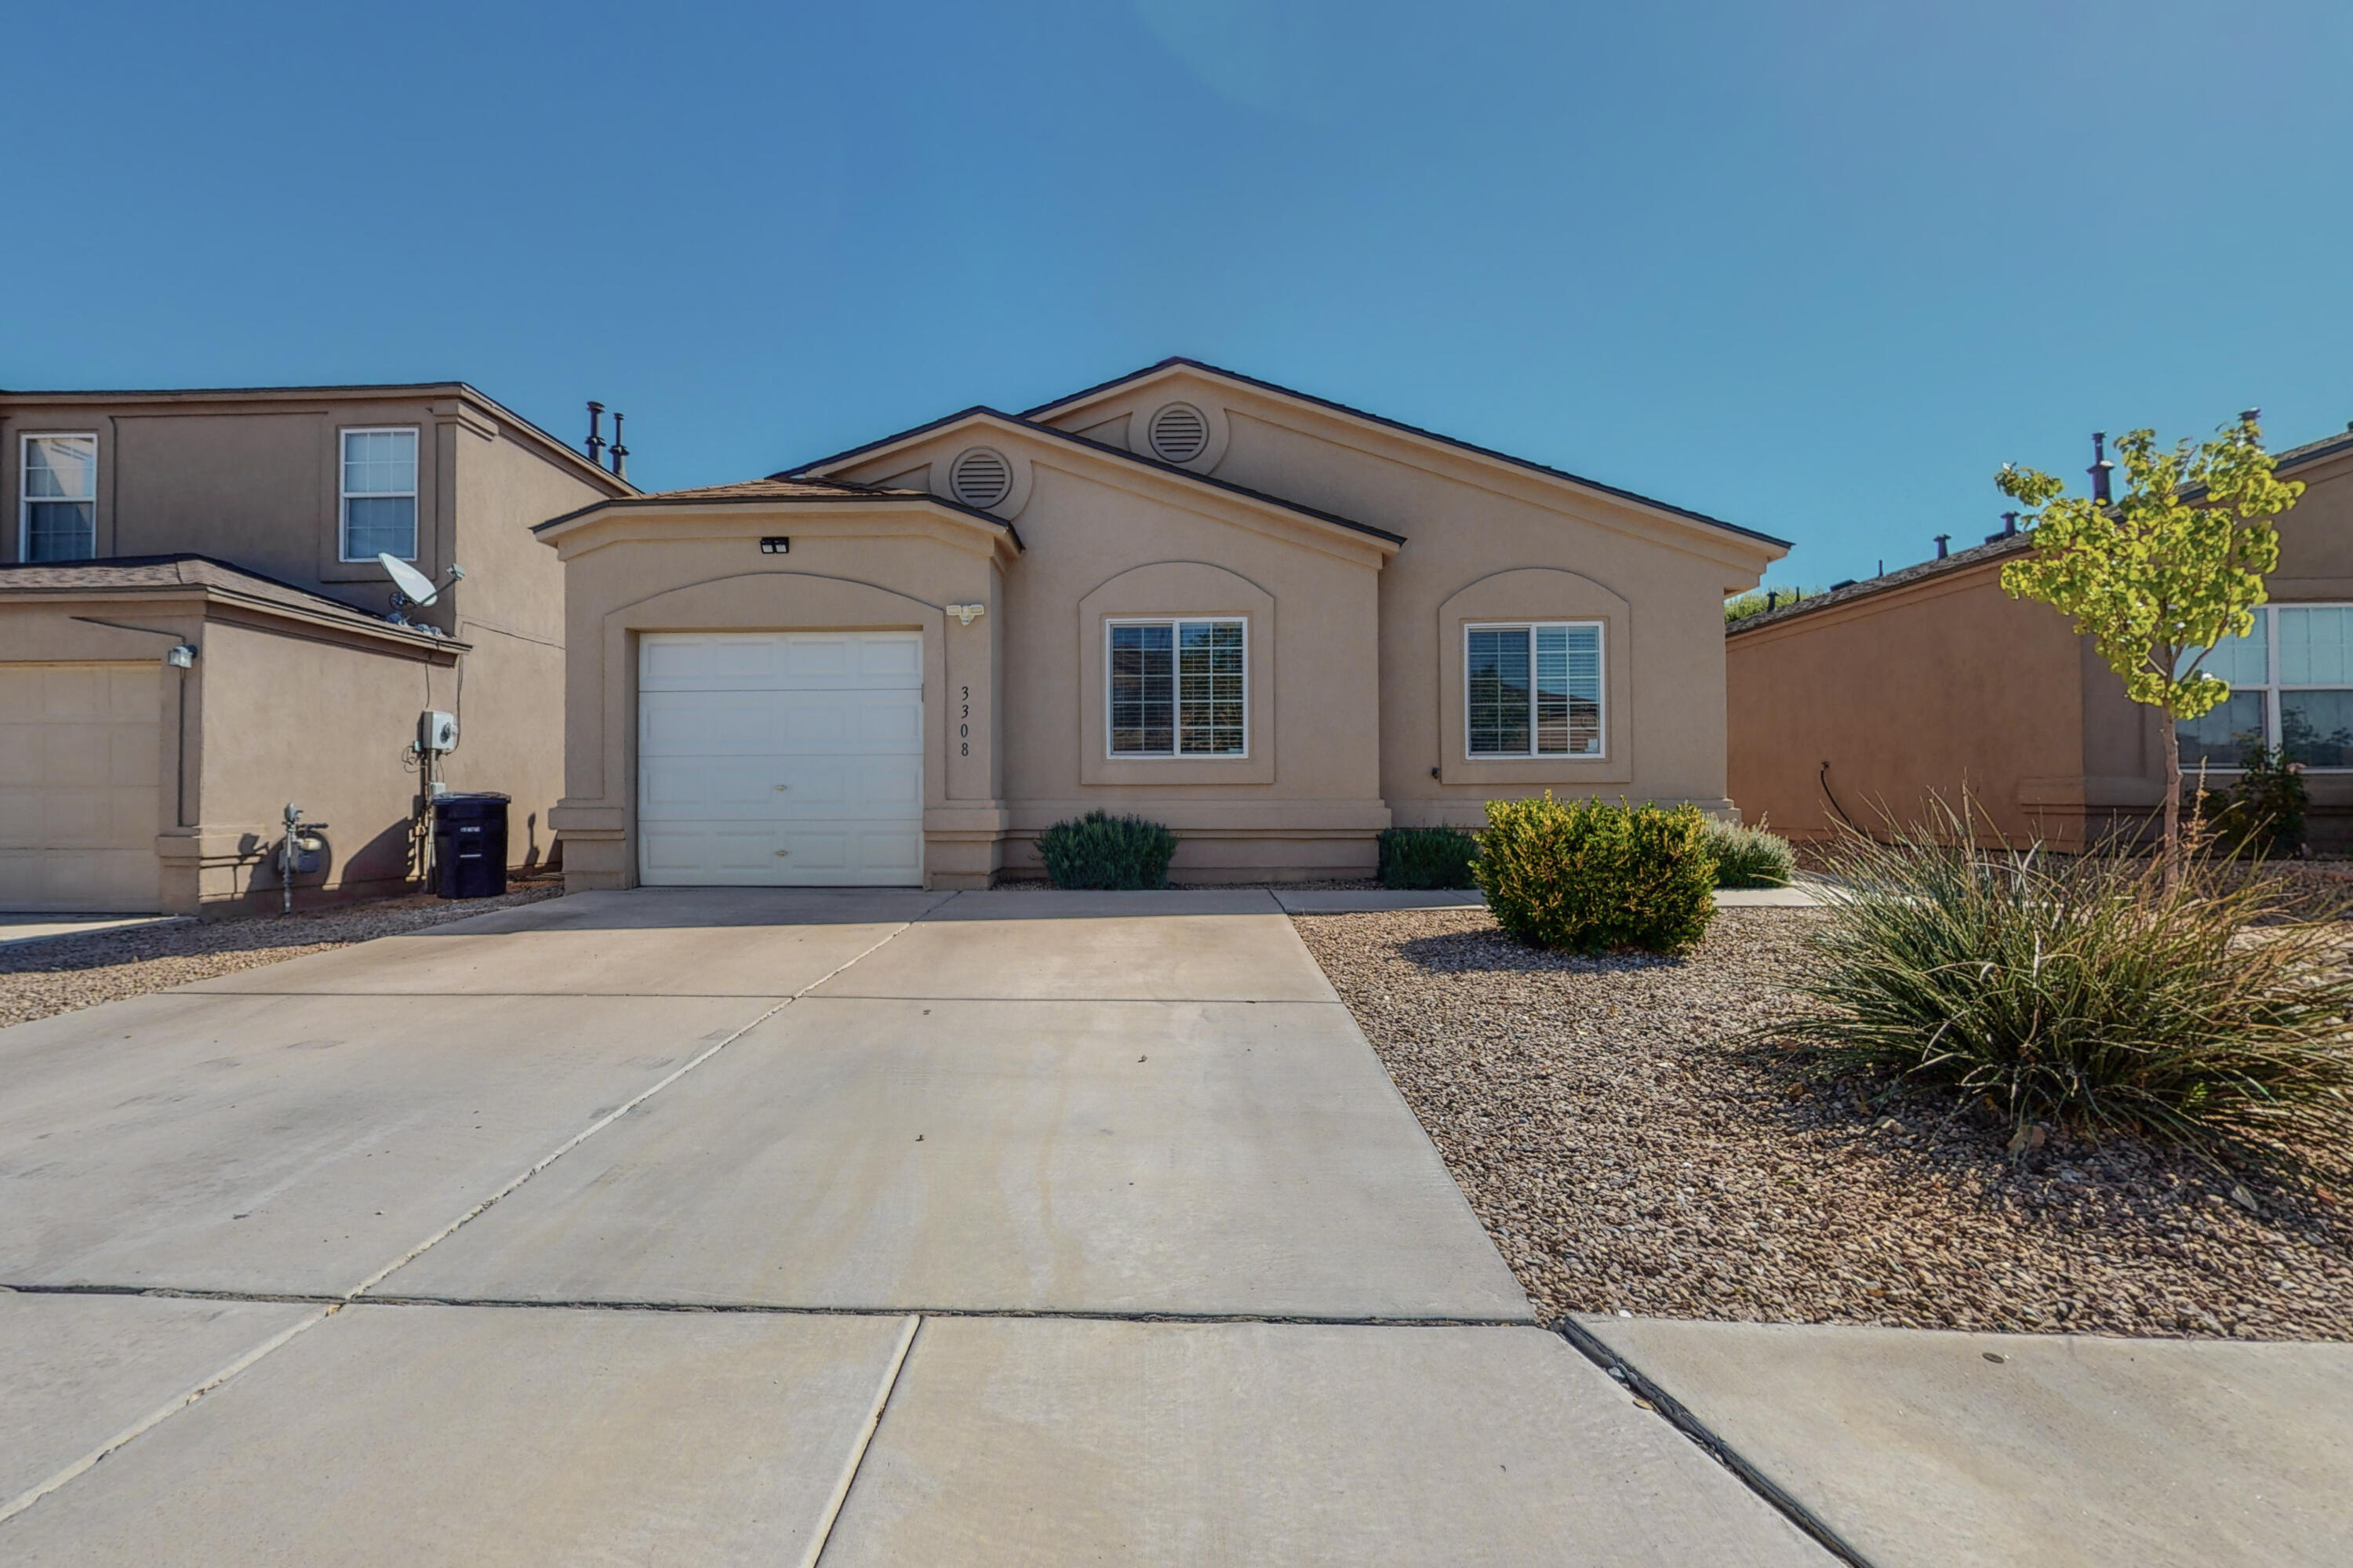 Great home in Anderson Hills.  Don't miss your opportunity to own this super cute two bedroom two bathroom home.  Some great features of this home include beautiful flooring, separate dining/office area, large great room, fantastic backyard with large covered patio, and so much more.  Call today for your private showing.